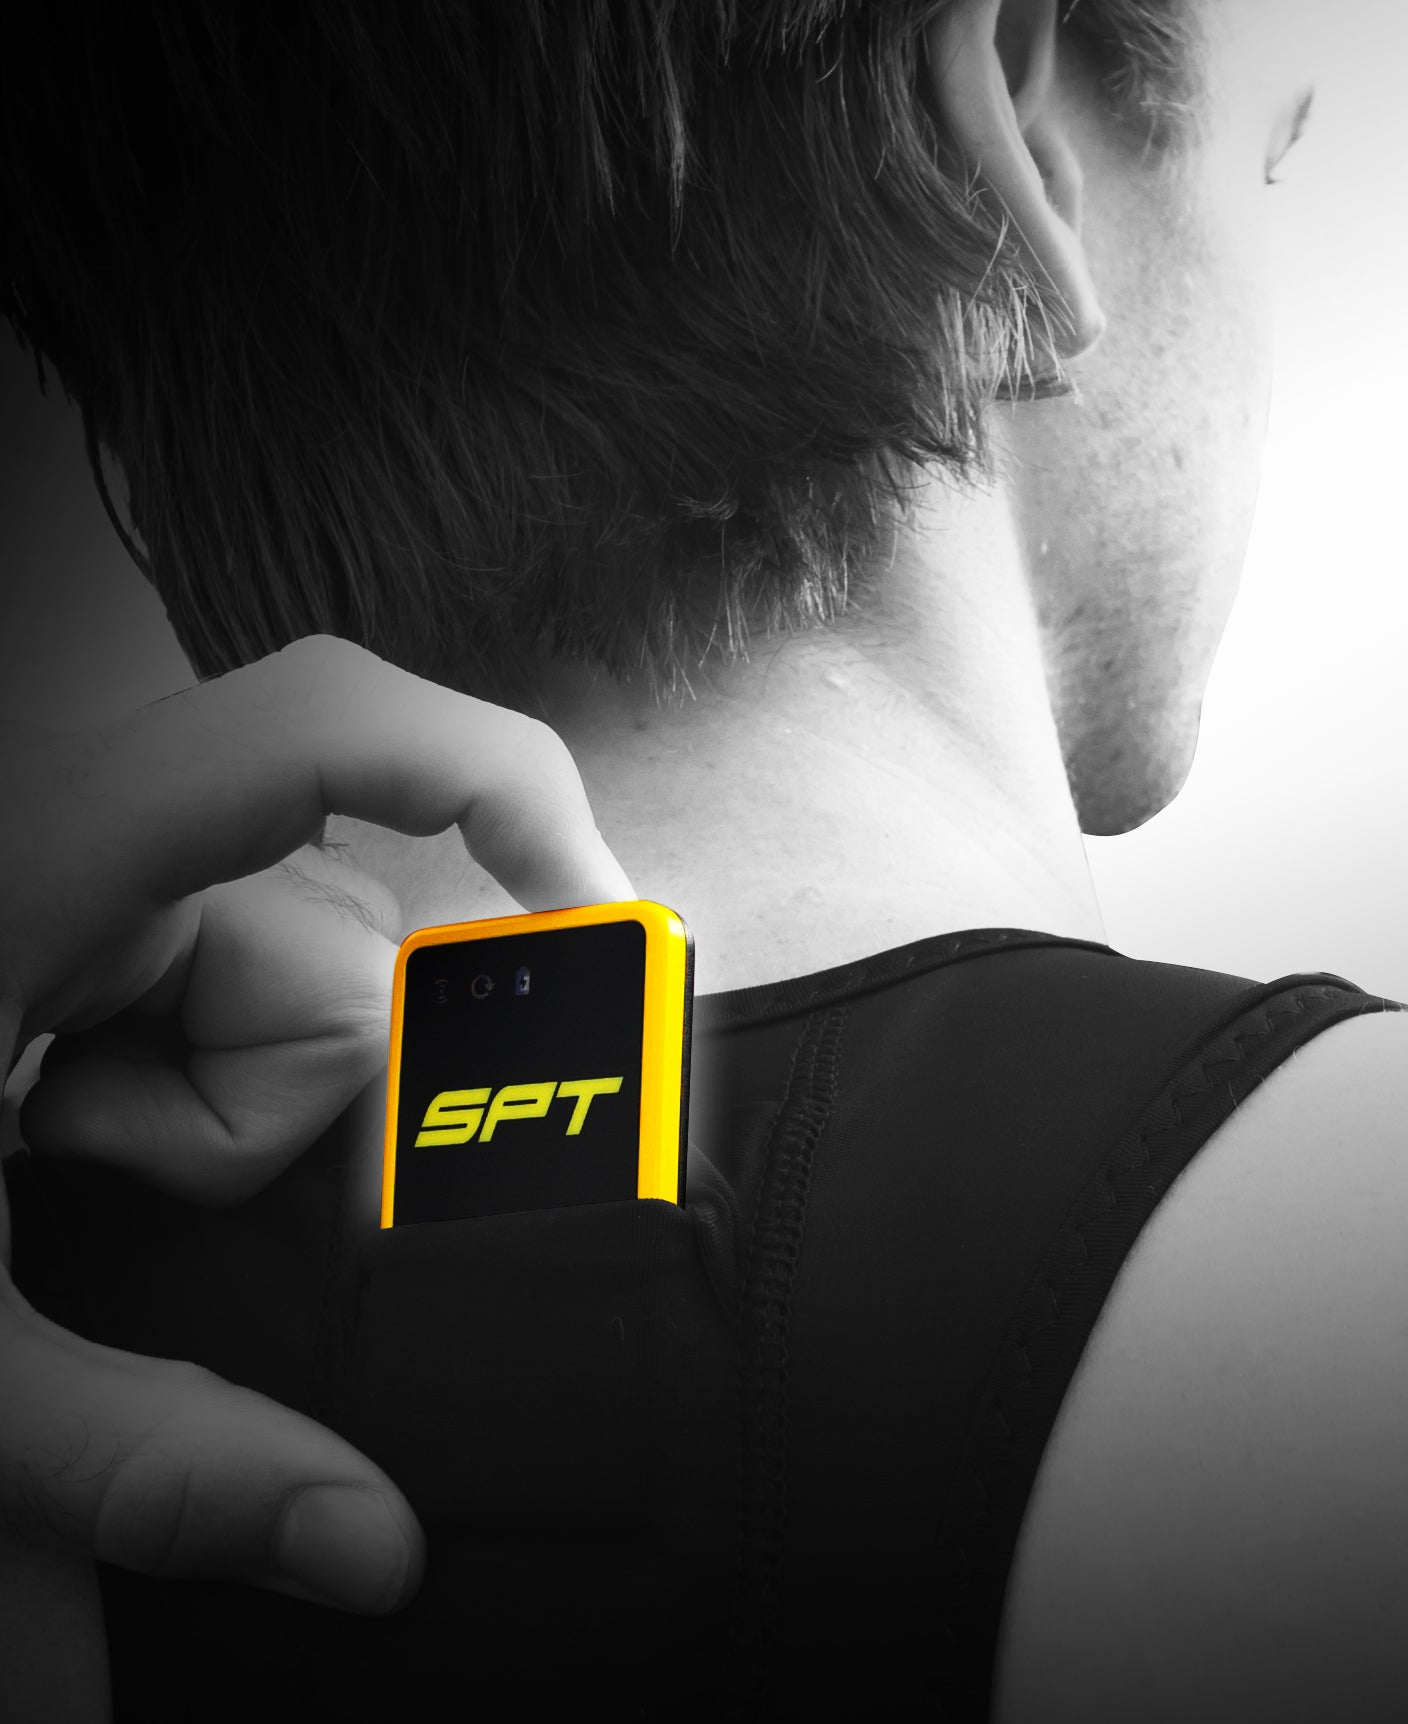 SPT GPS Tracker features